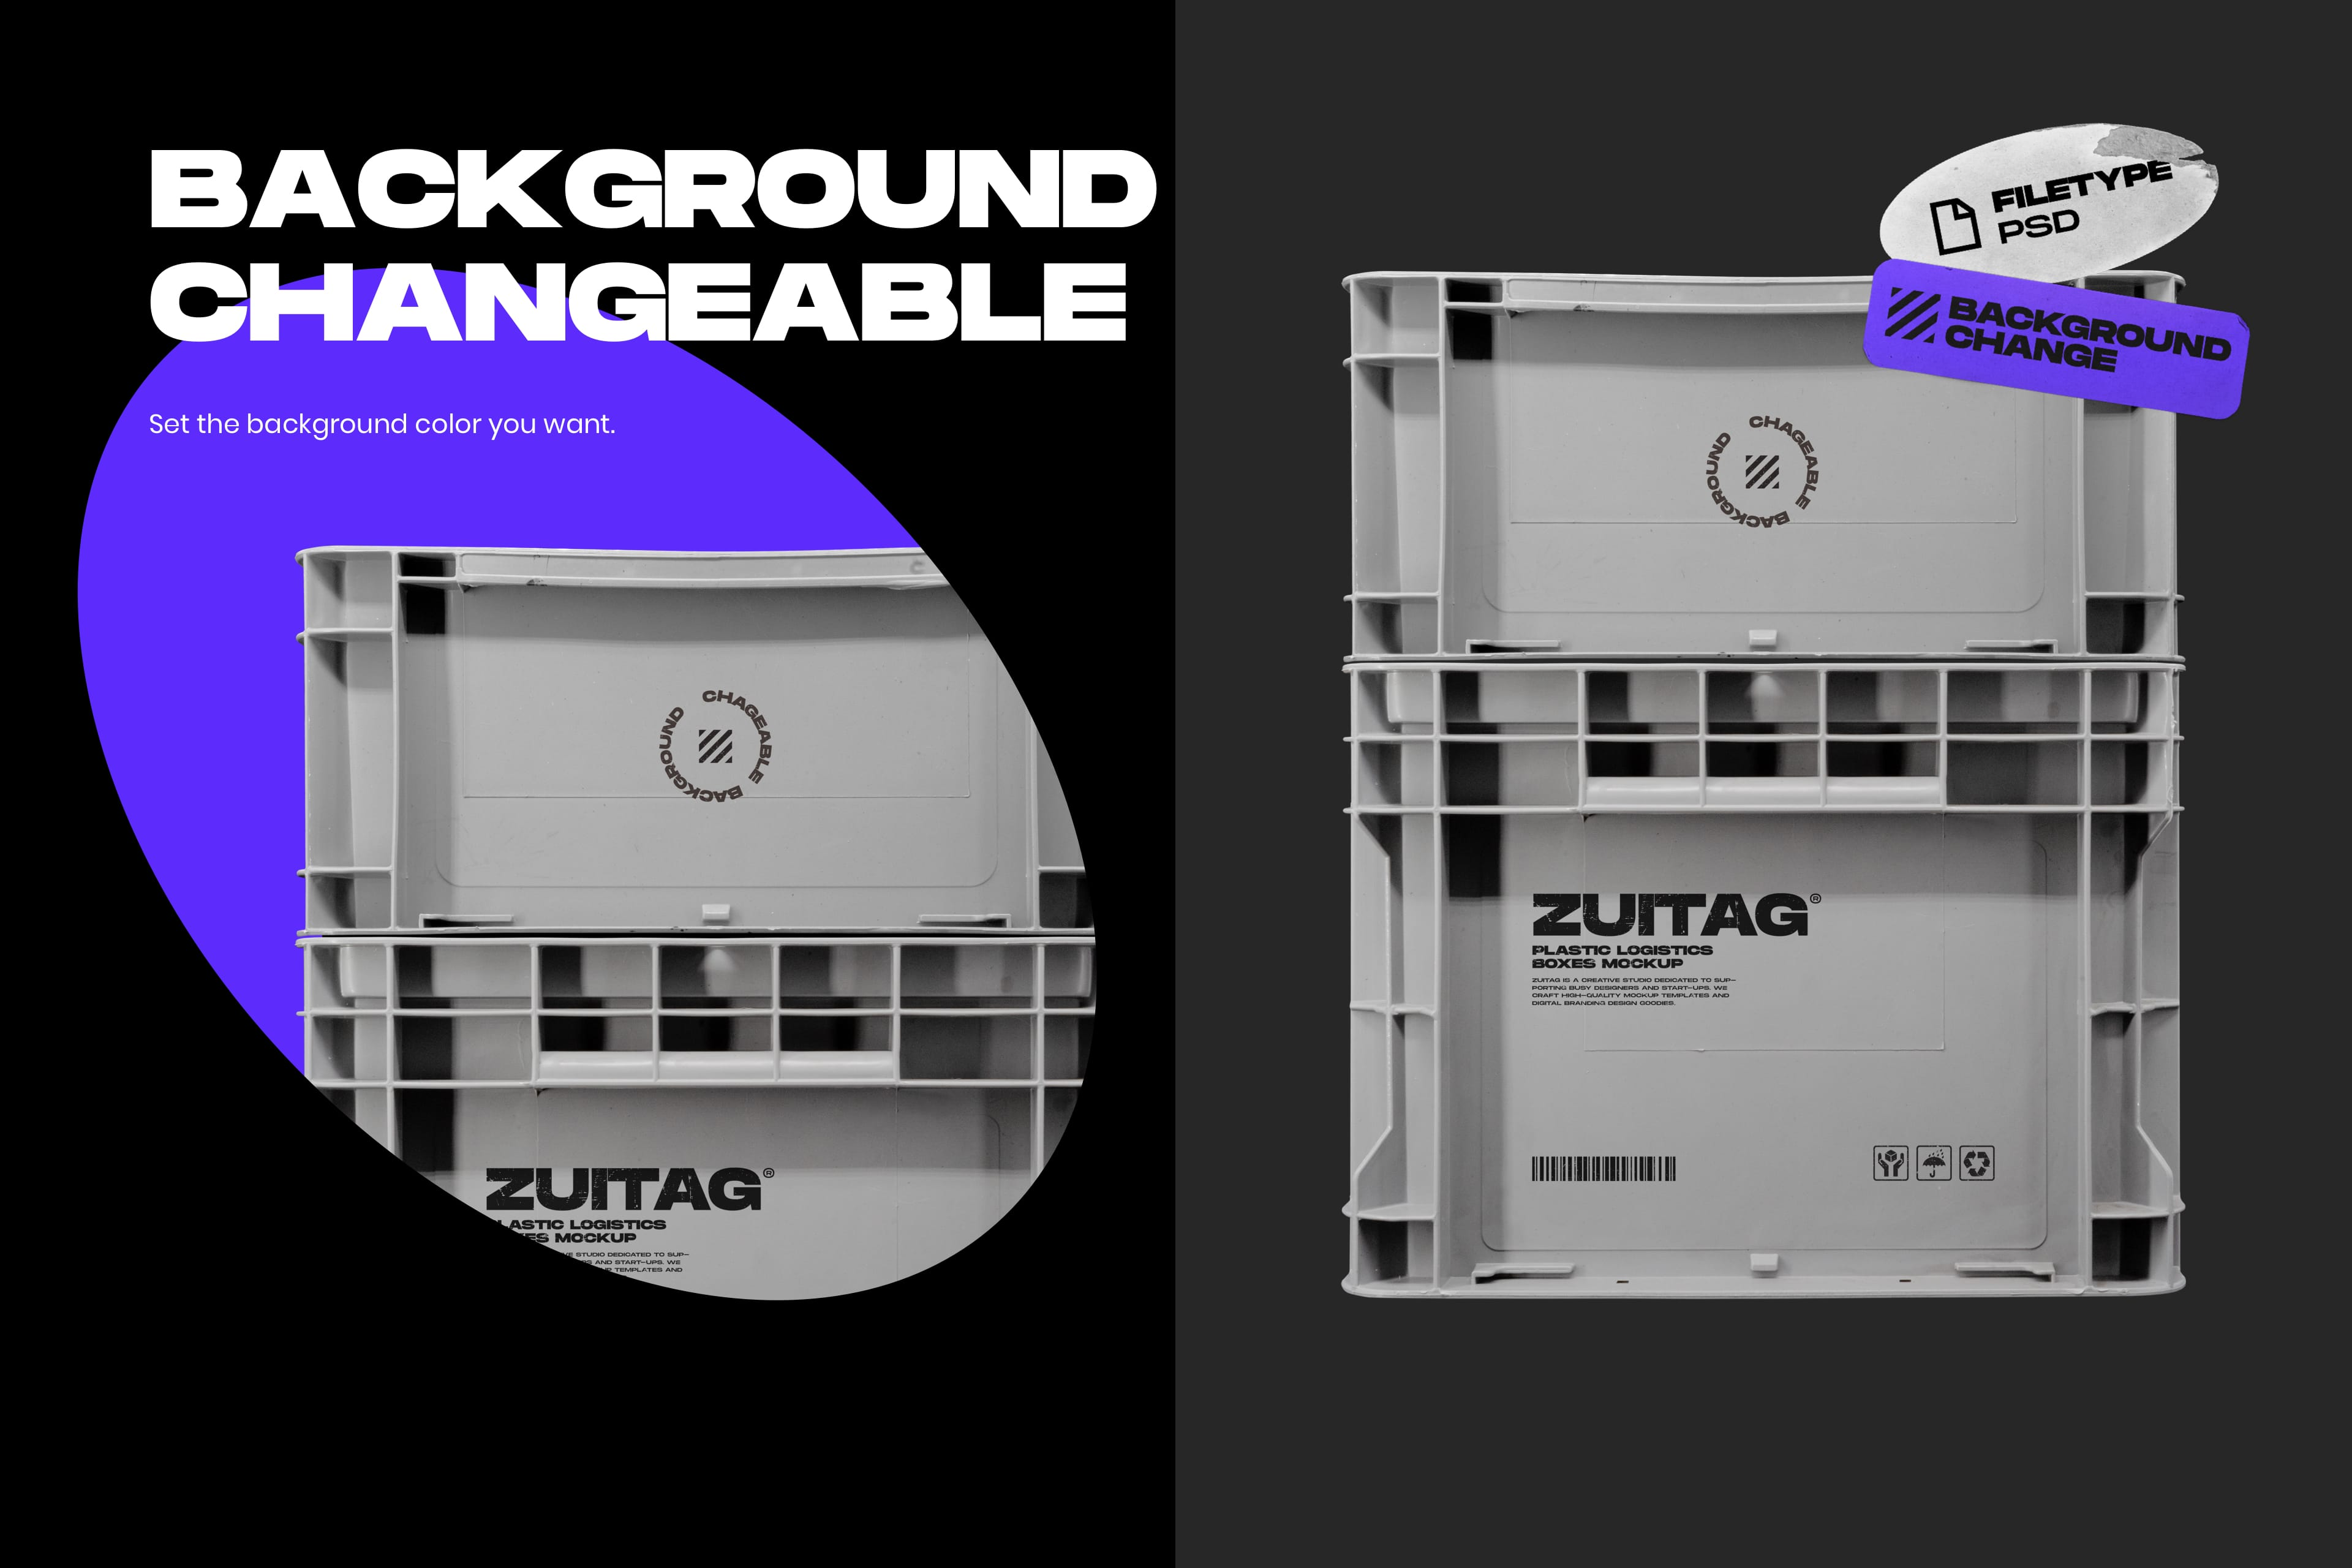 Plastic Logistics Boxes Mockup - Background Changeable